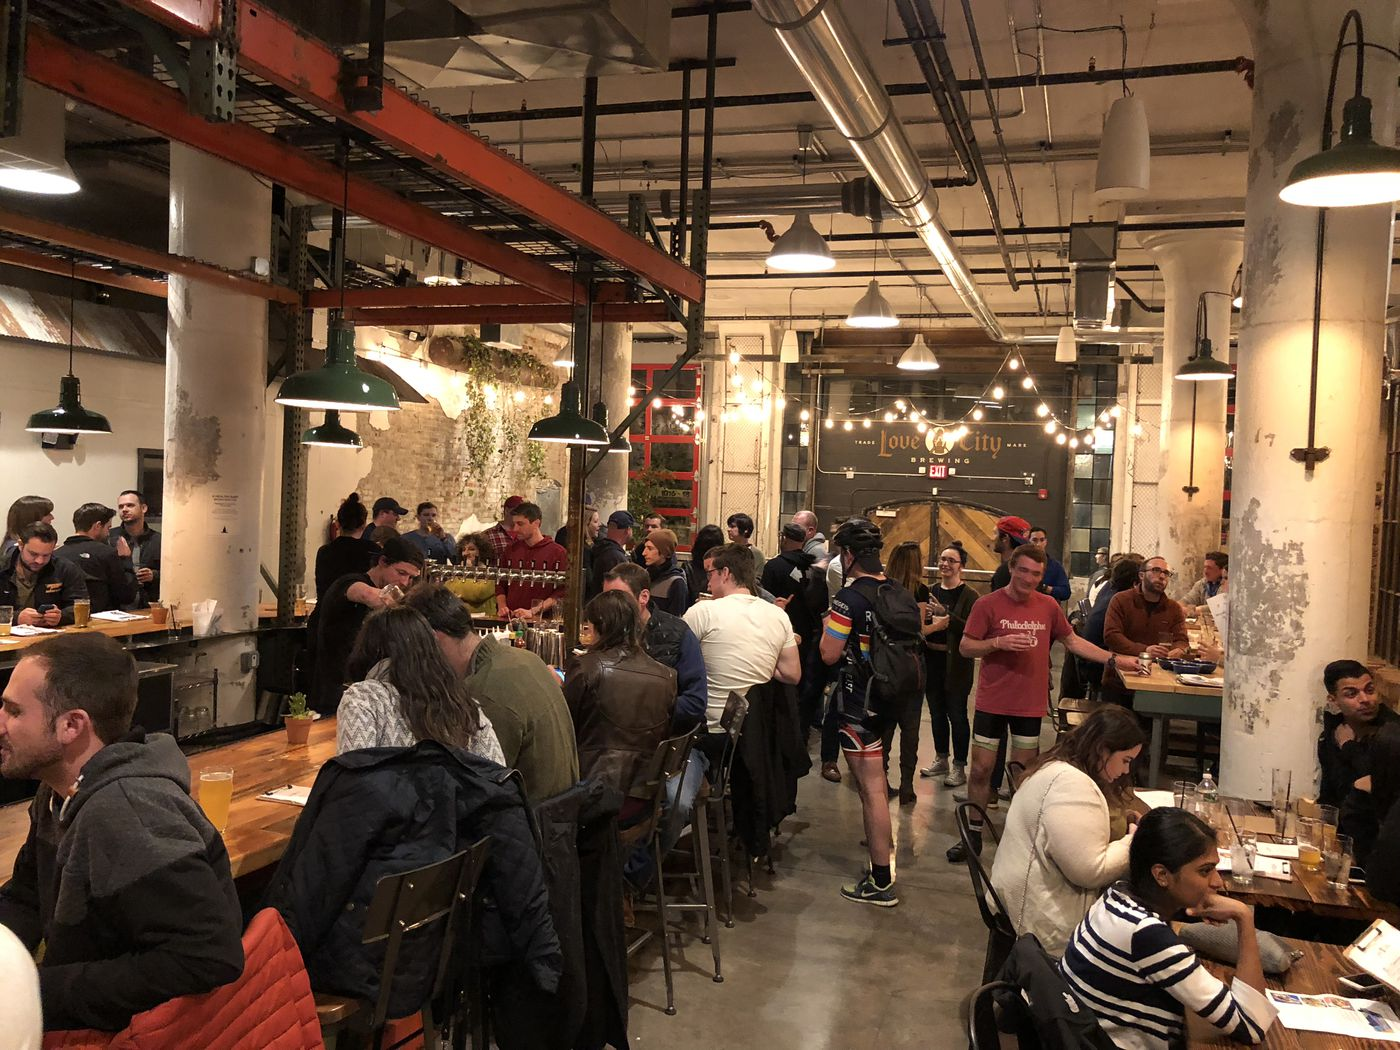 Love City Brewing Co. opens in Callowhill